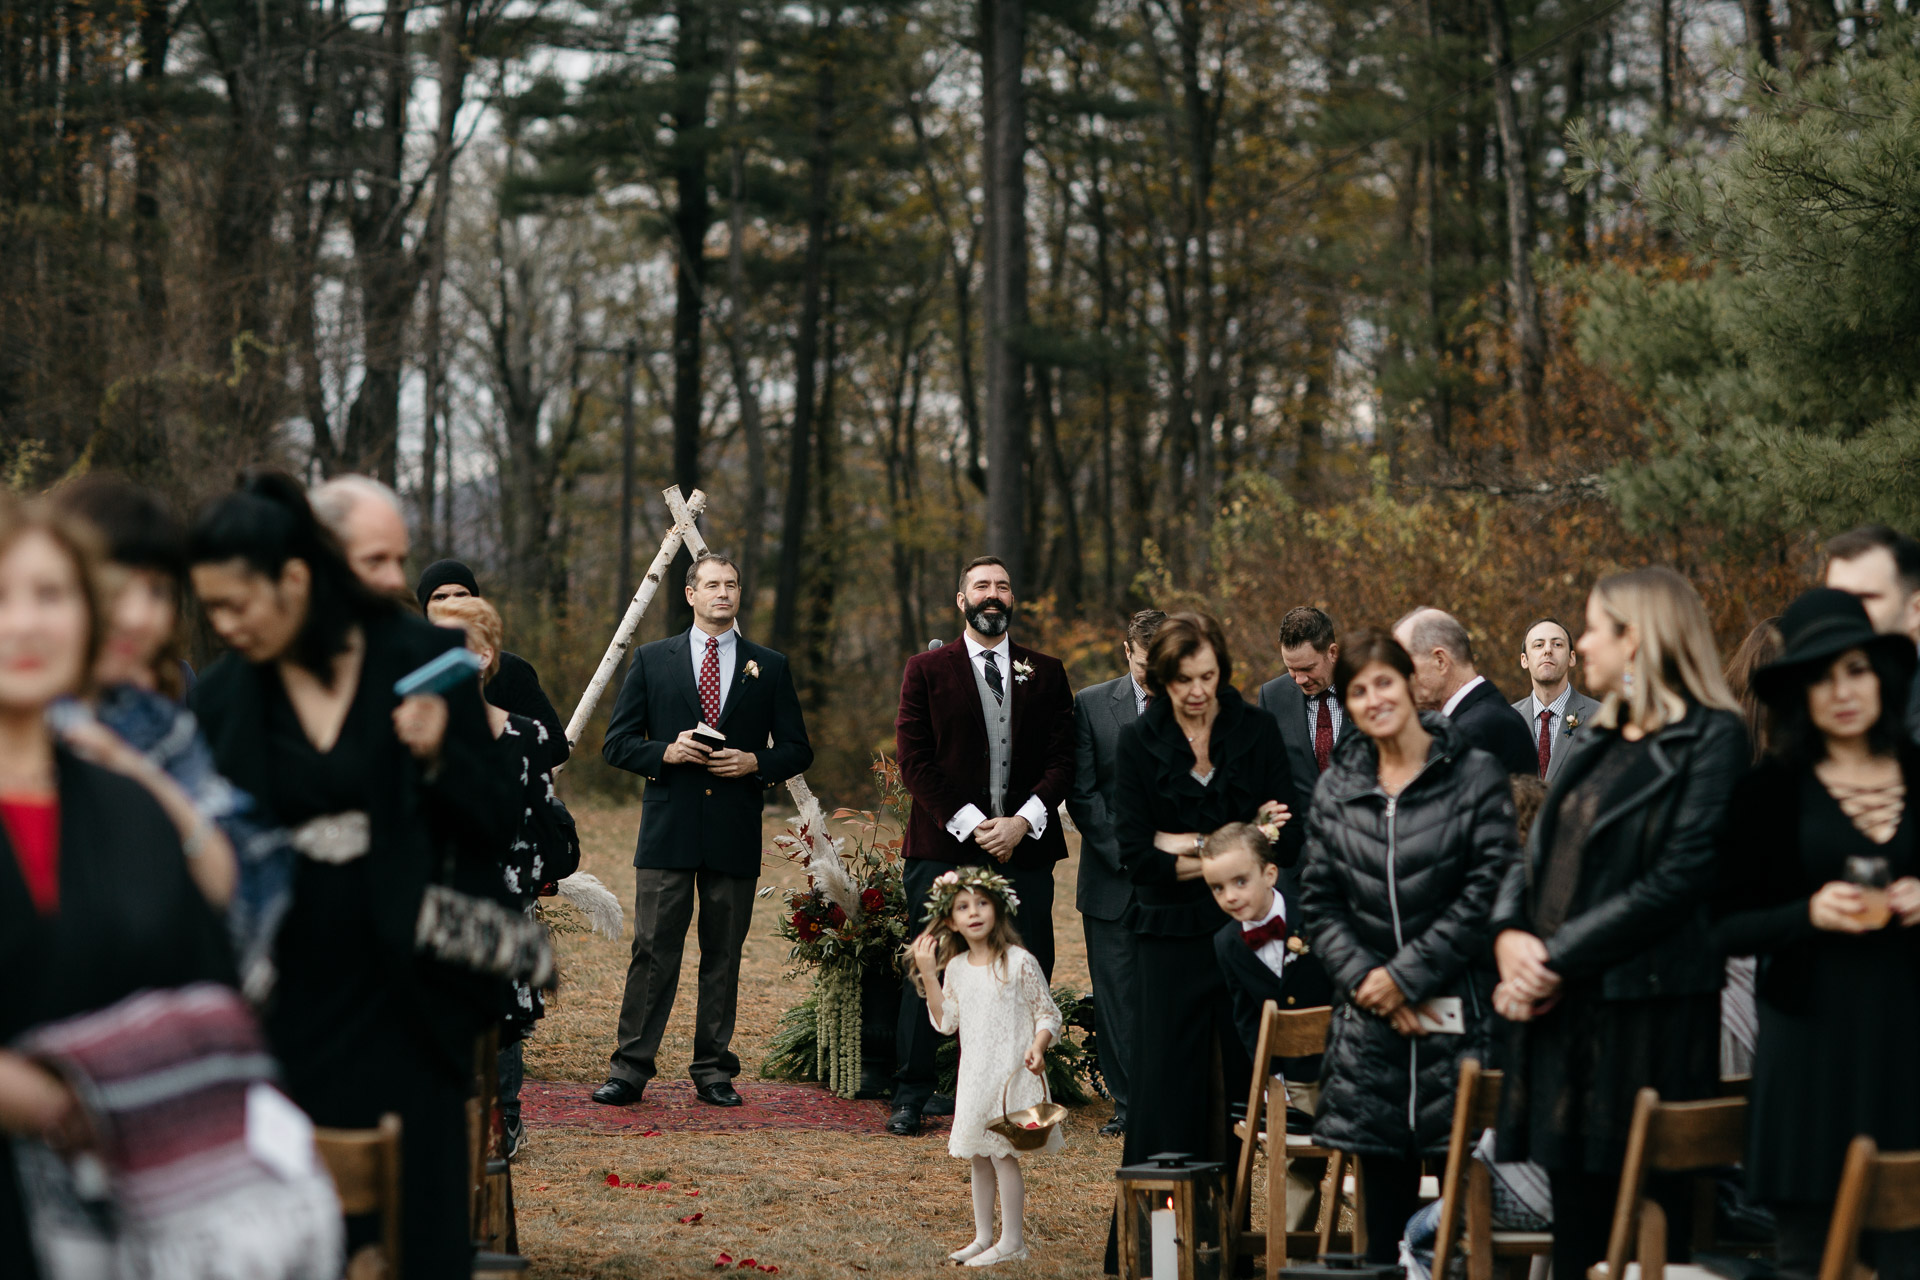 Robyn & Jim Catskills Fall Wedding at Foxfire Mountain House by Jean-Laurent Gaudy Photography-2